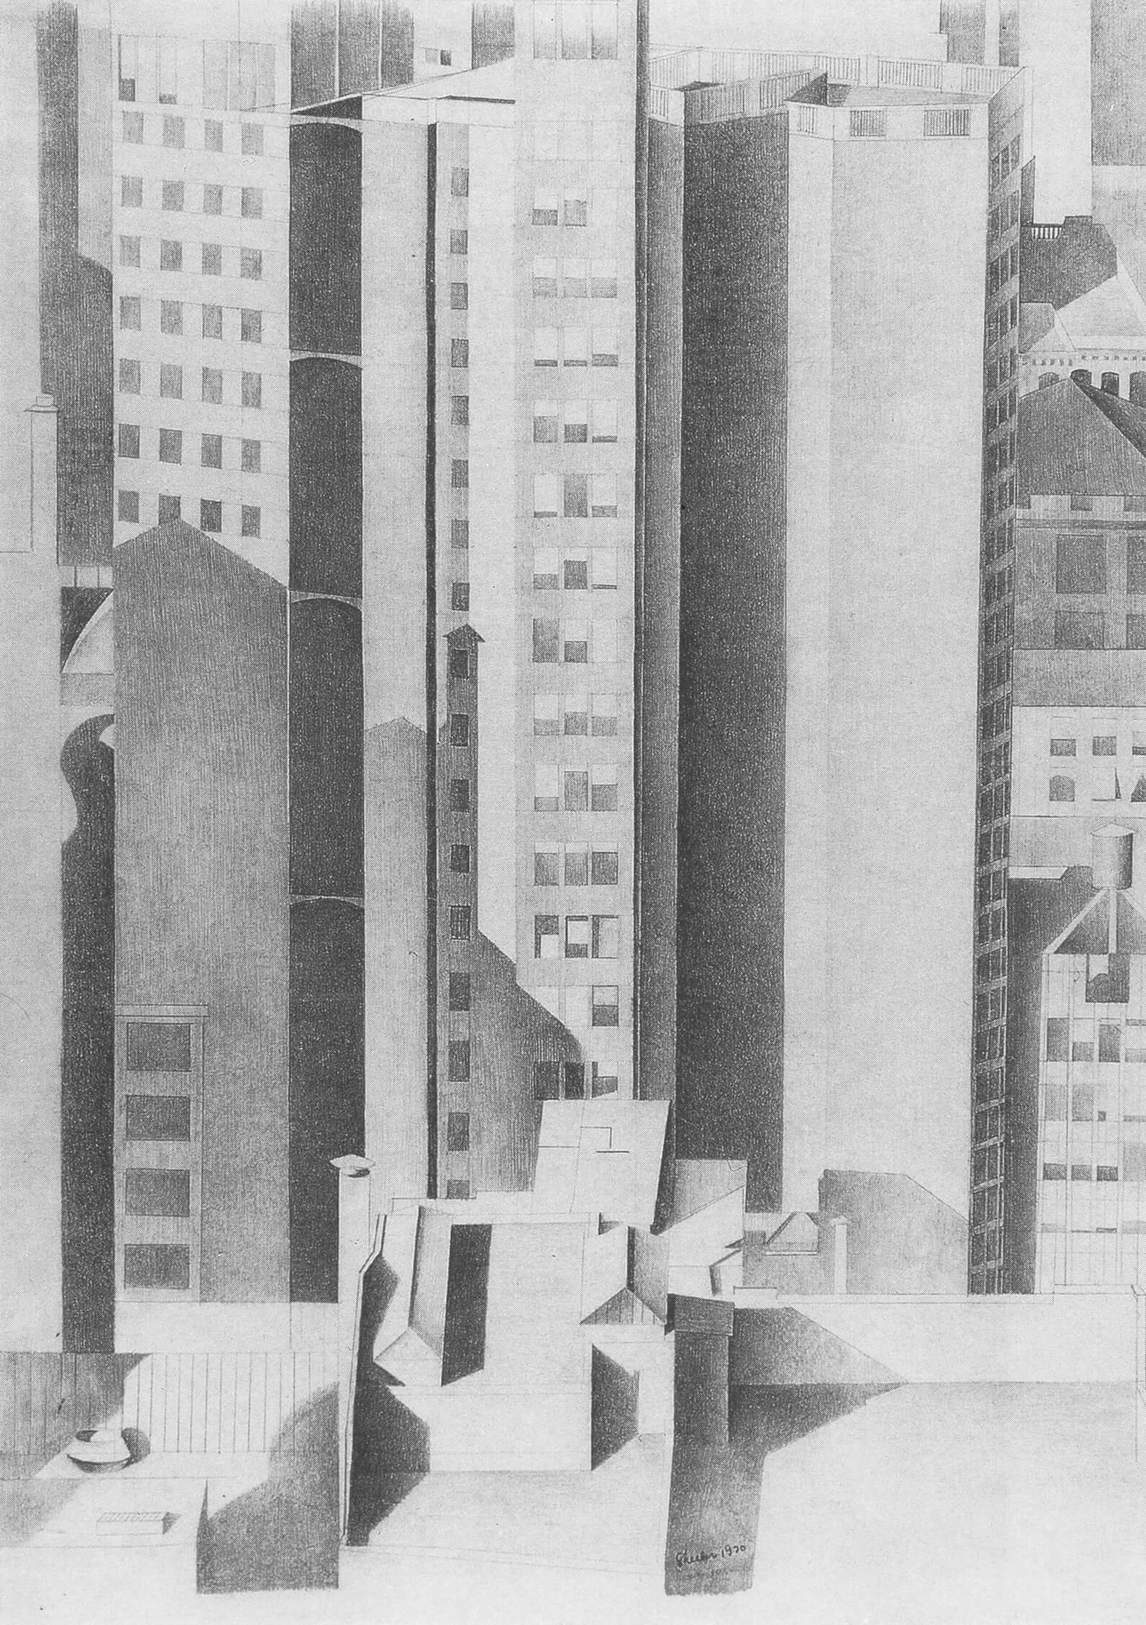 Art Canada Institute, Charles Sheeler, New York, 1920